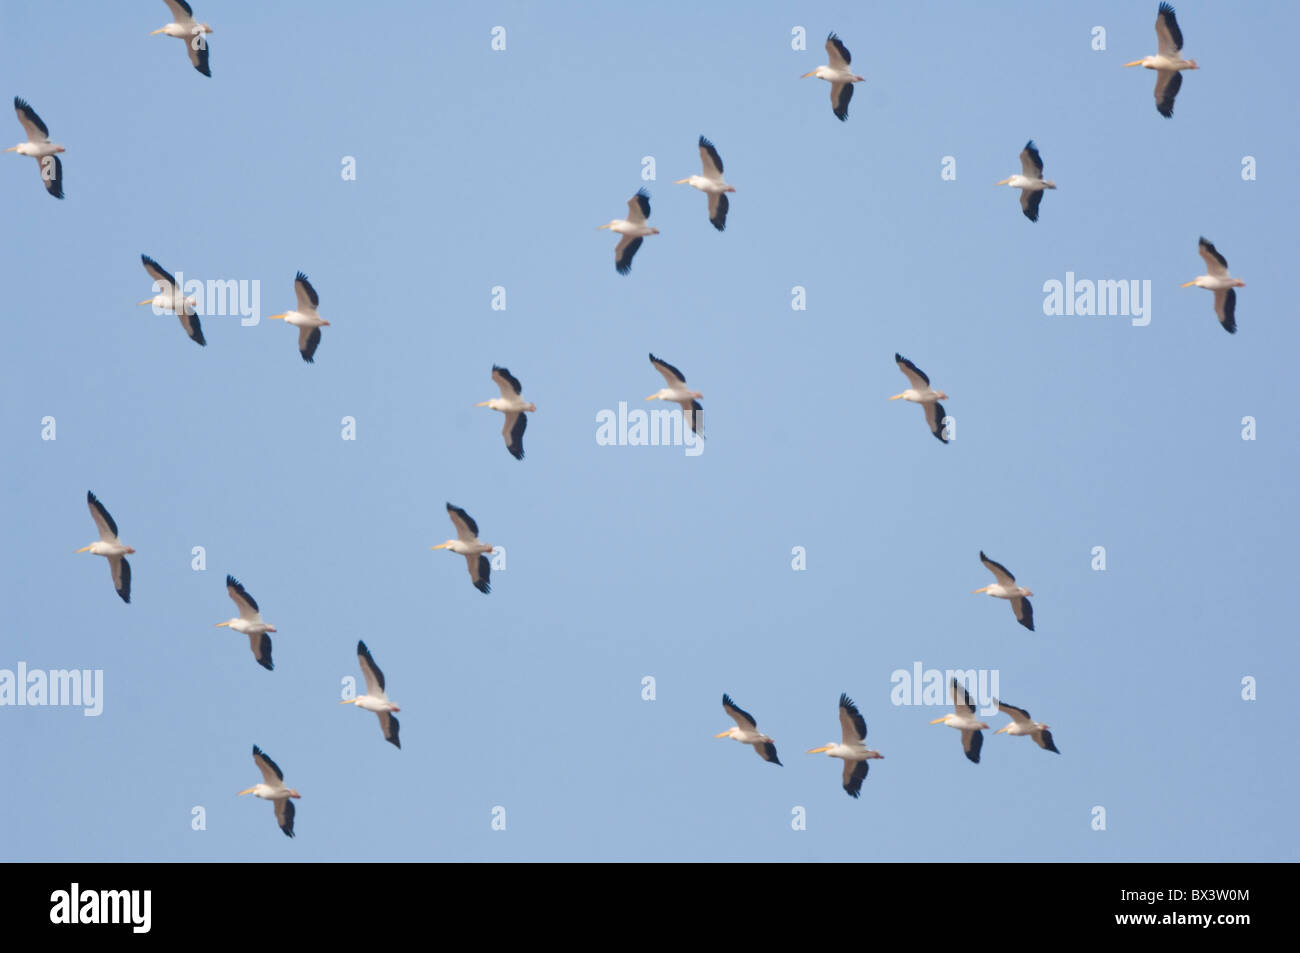 Great White Pelicans Pelecanus onocrotalus Kruger National Park South Africa - Stock Image